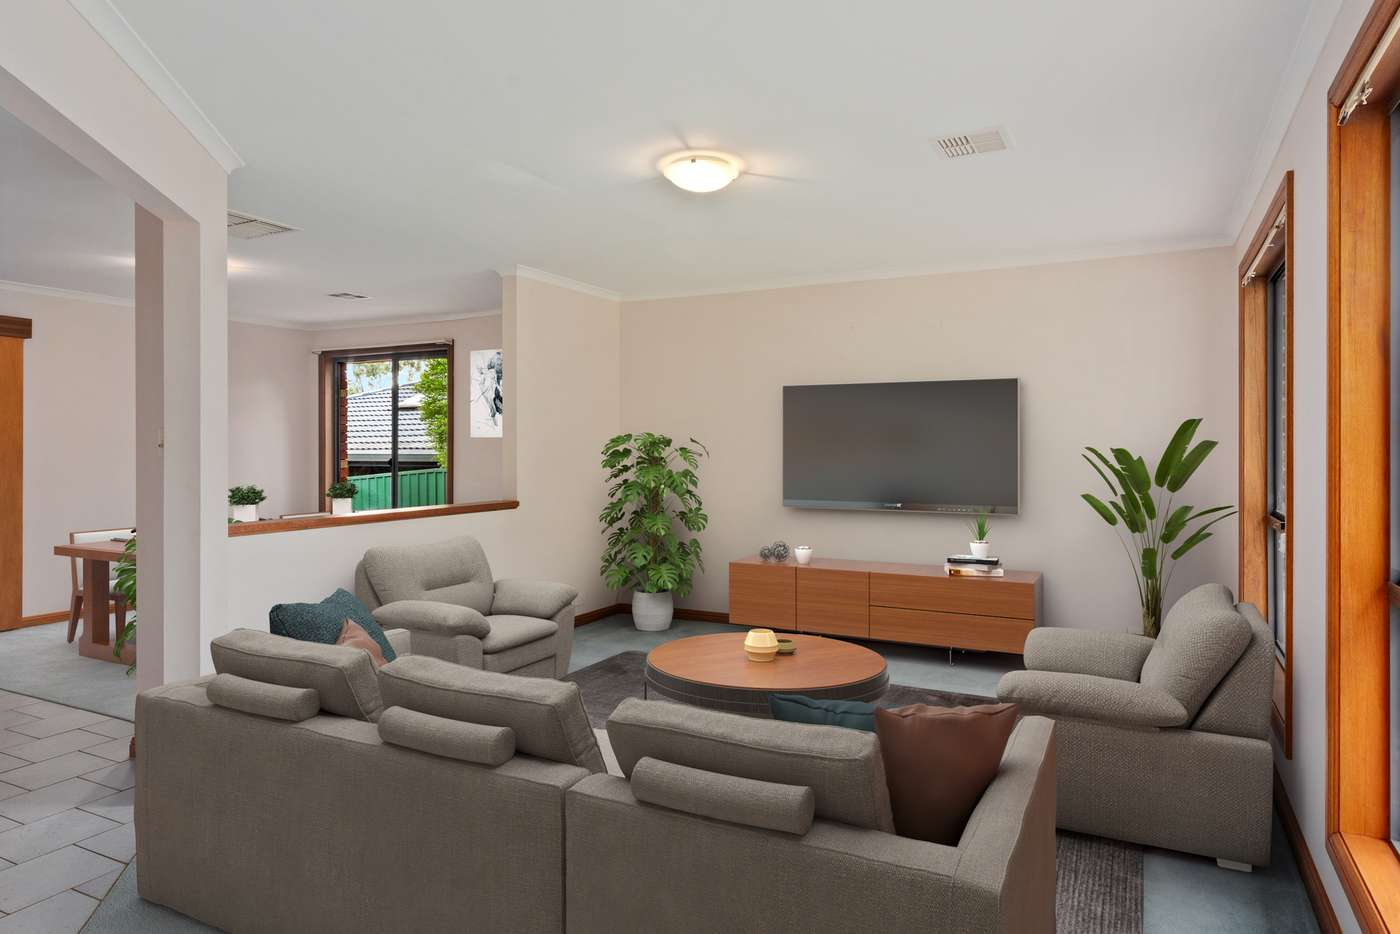 Fifth view of Homely house listing, 31 Dunalbyn Drive, Aberfoyle Park SA 5159